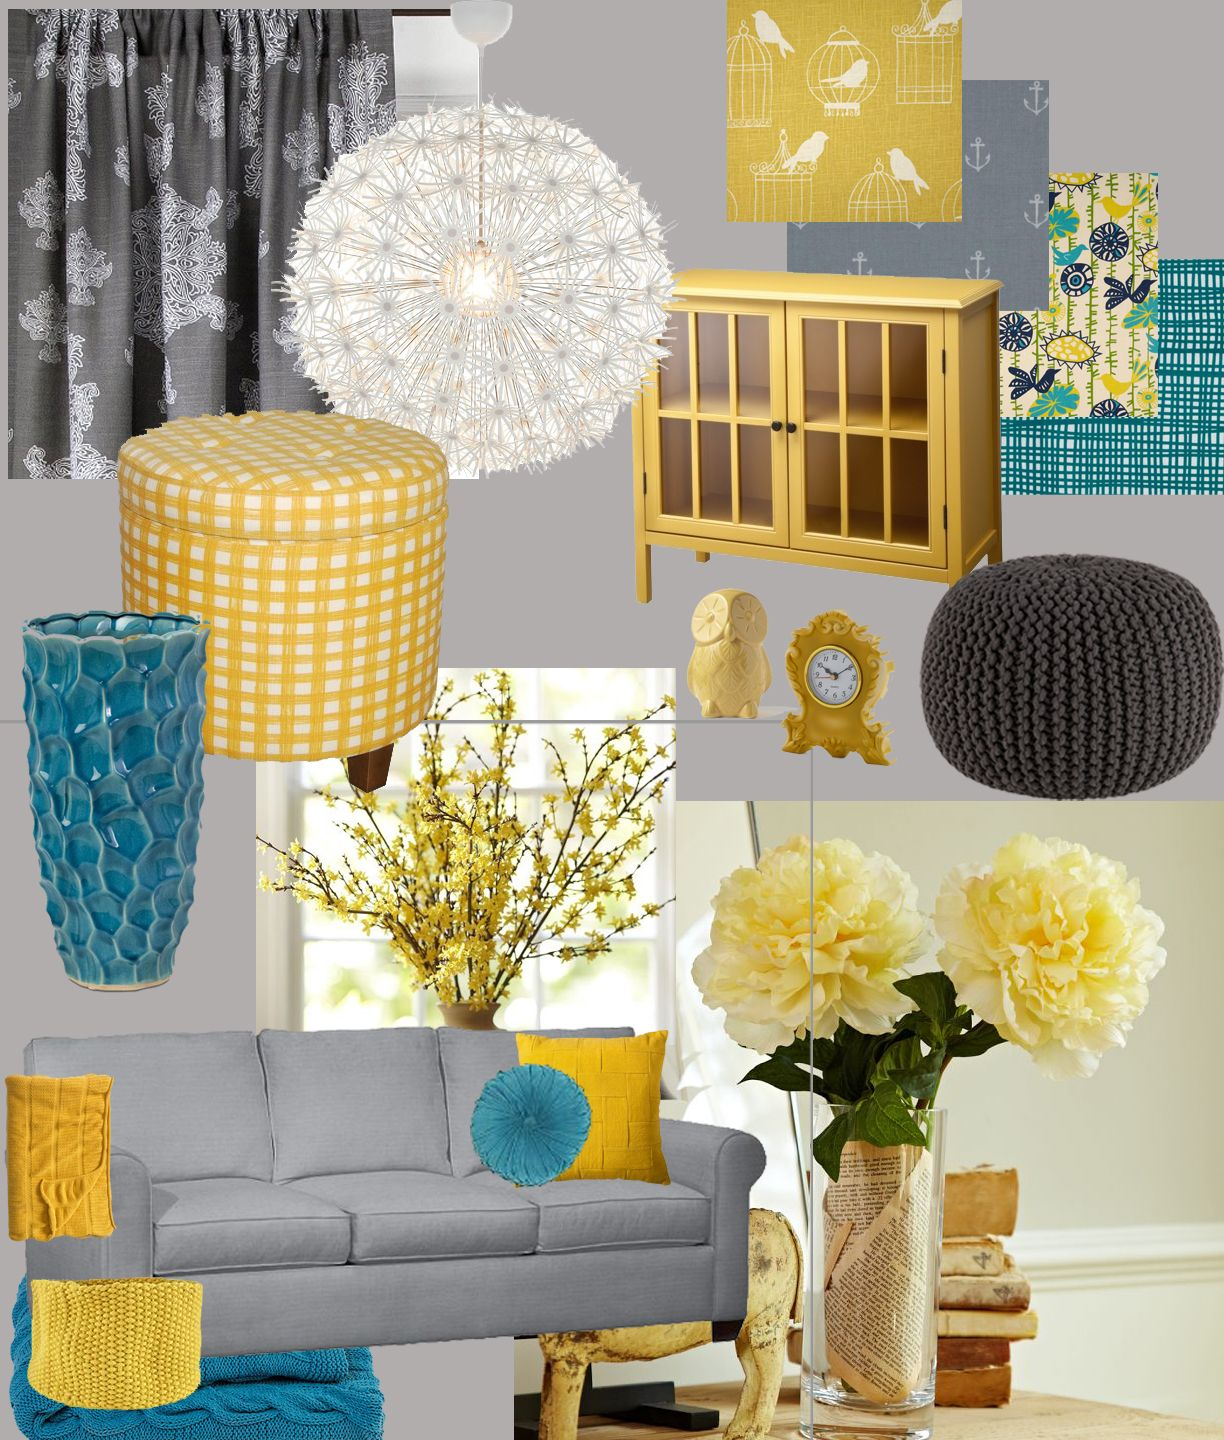 Grey Blue And Brown Living Room Design: Gray, Teal, Yellow And Black Rugs